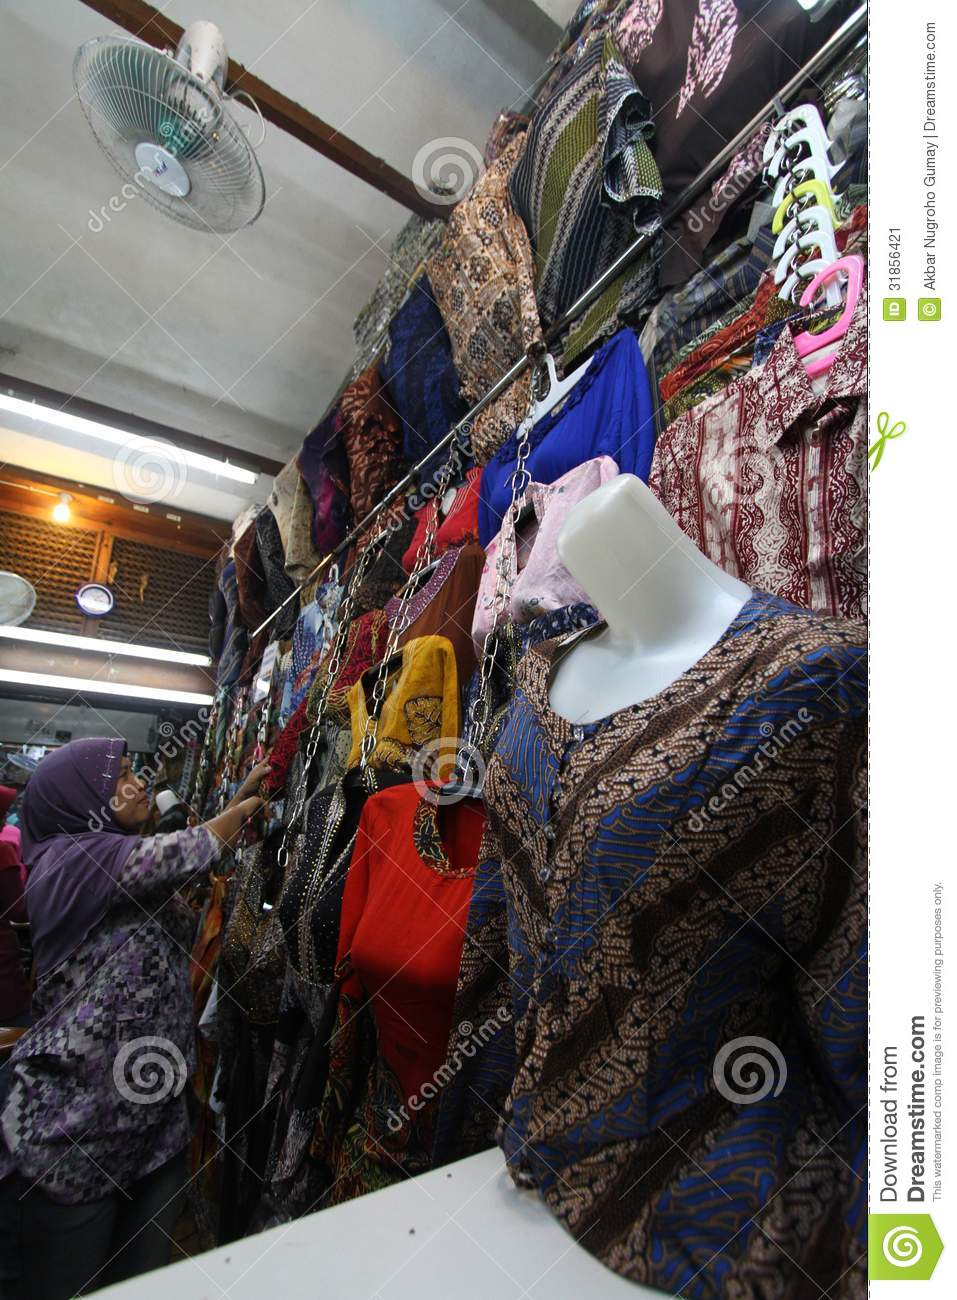 Commodities traders set up in batik market, Solo, central java ...